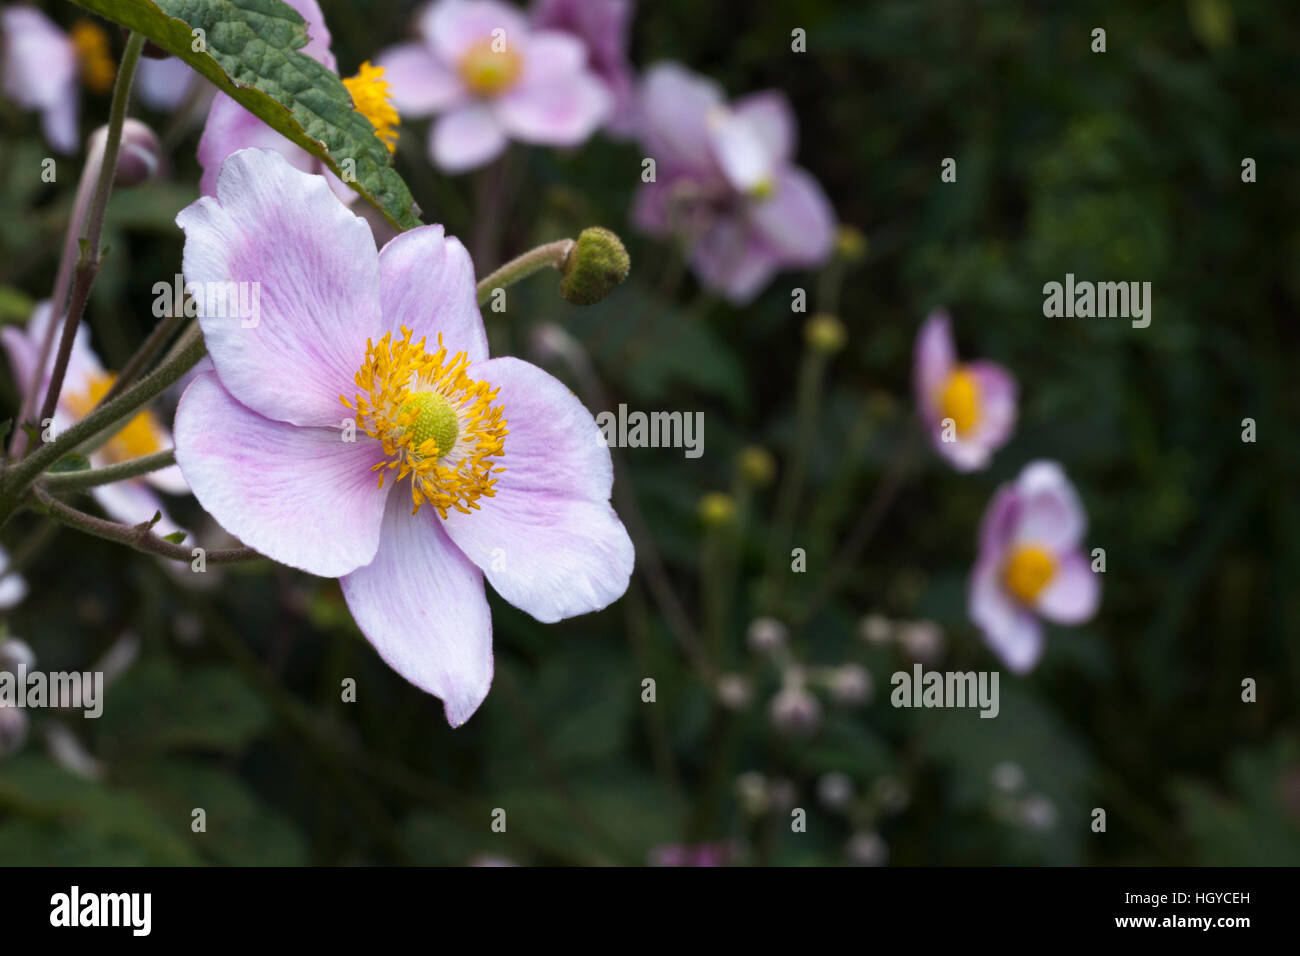 Detail shot of a Japanese anemone (Anemone hupehensis) within the walled garden of Rousham House in Oxfordshire, - Stock Image